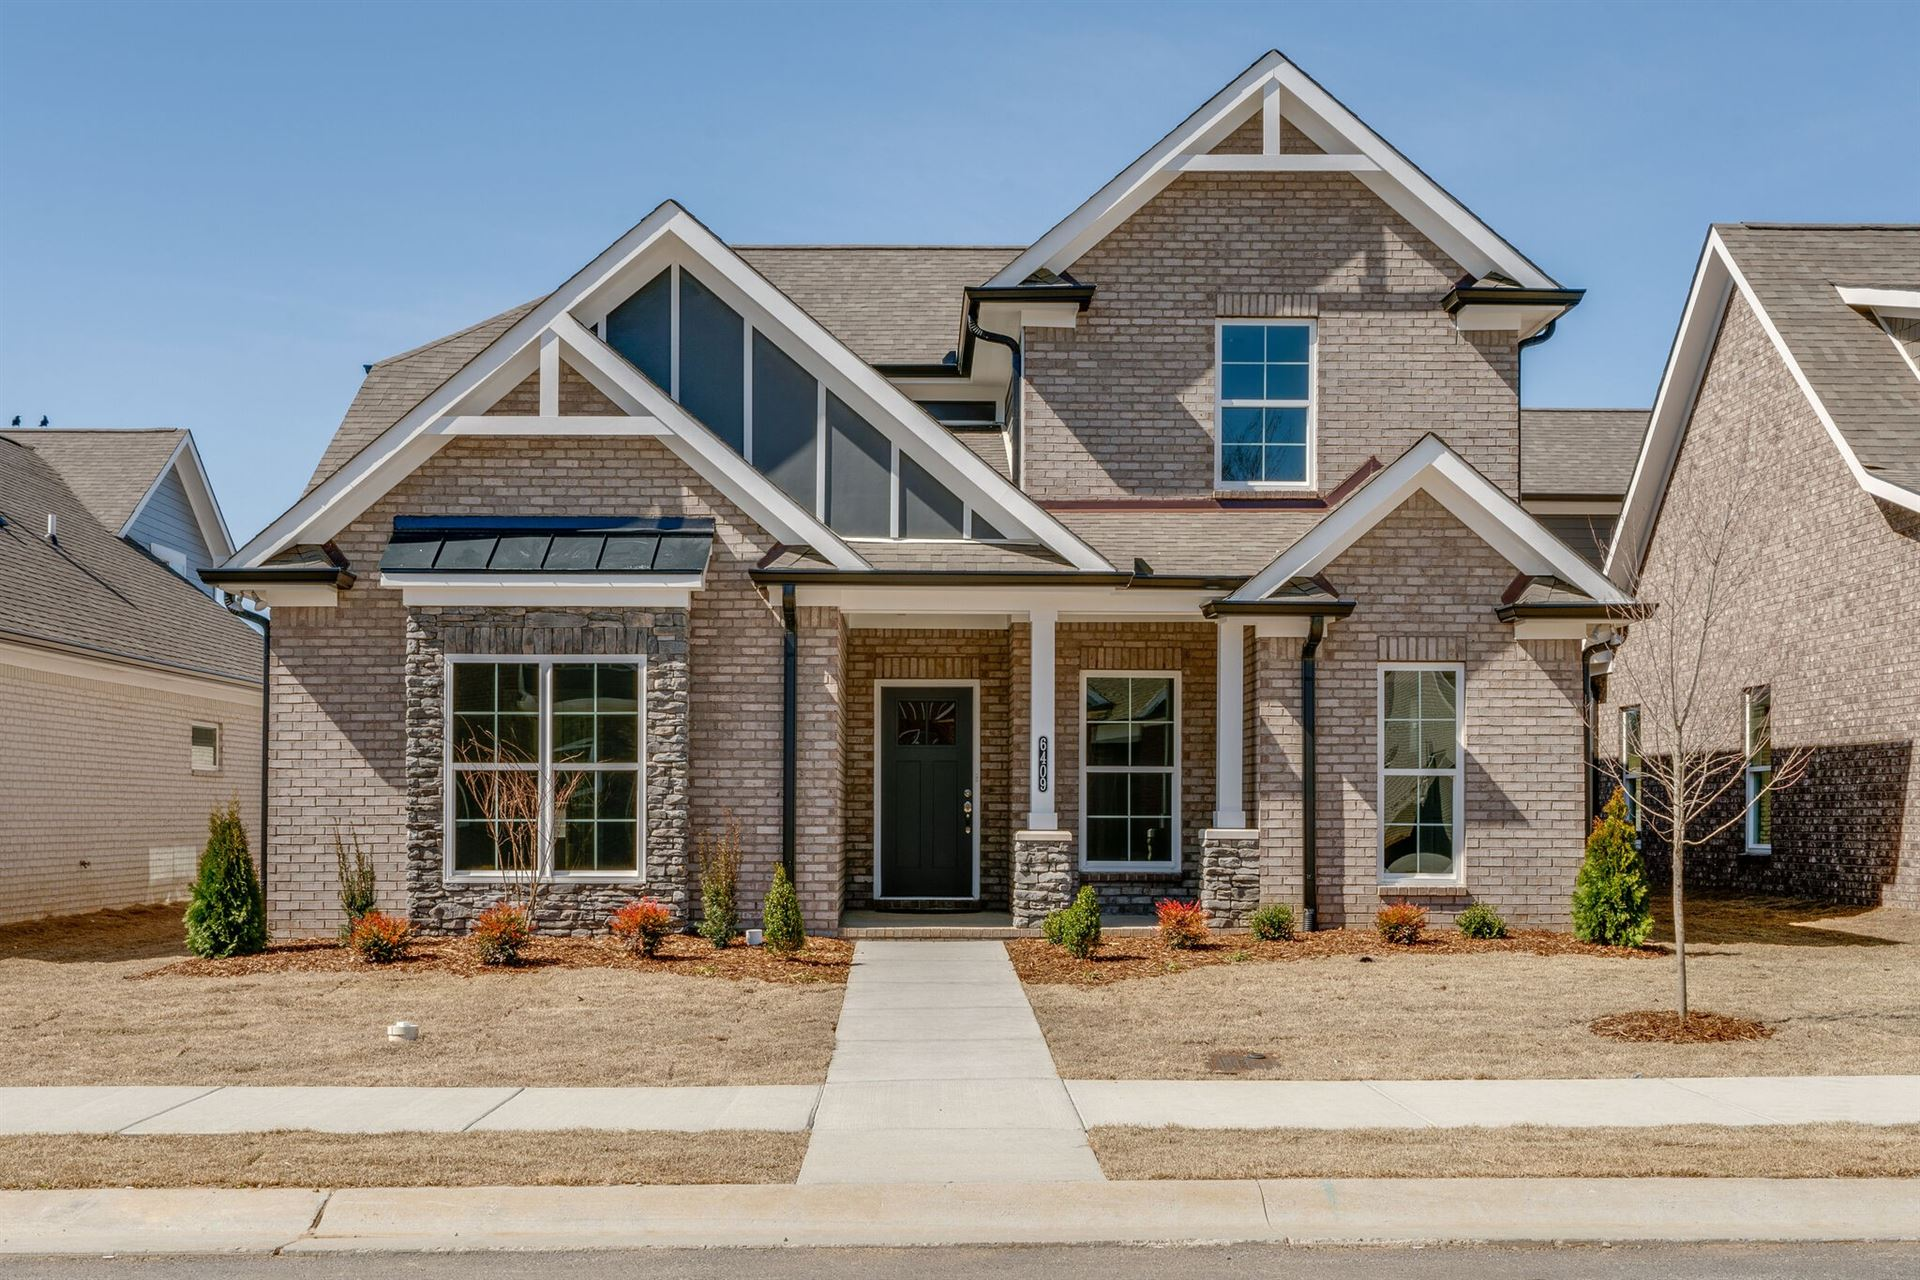 Photo of 6437 Armstrong Dr., Hermitage, TN 37076 (MLS # 2249191)